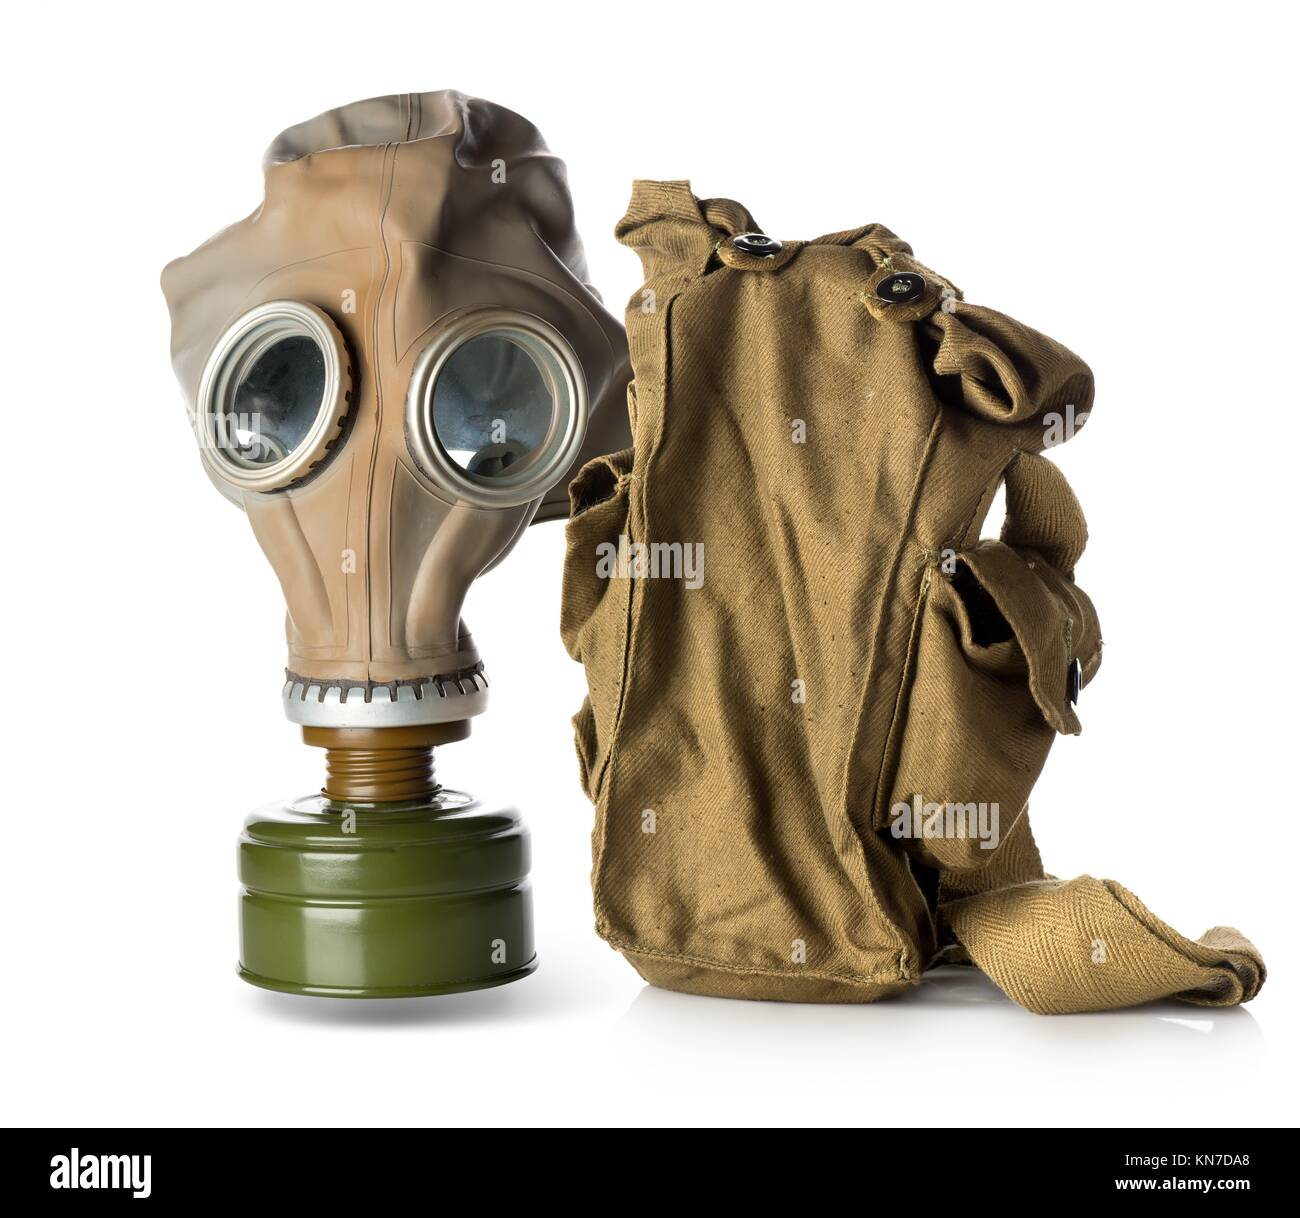 Respirator with bag isolated on white background. - Stock Image